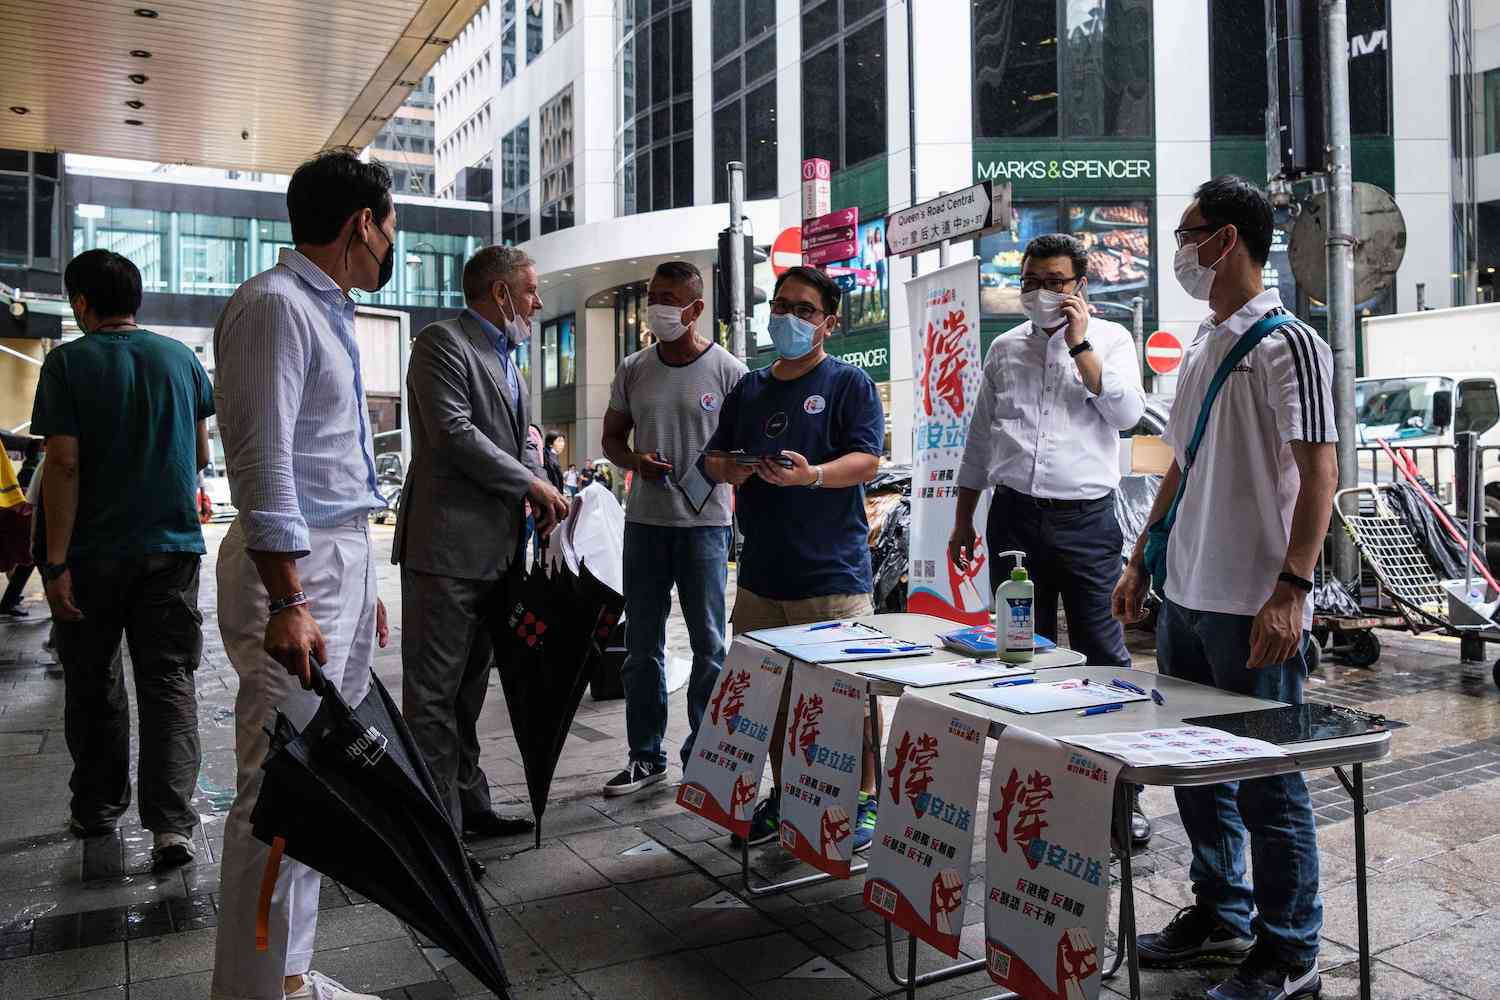 Pedestrians stop at a booth set up by a pro-China group on Friday to gather signatures in support of a new security law in Hong Kong. (AFP Photo)